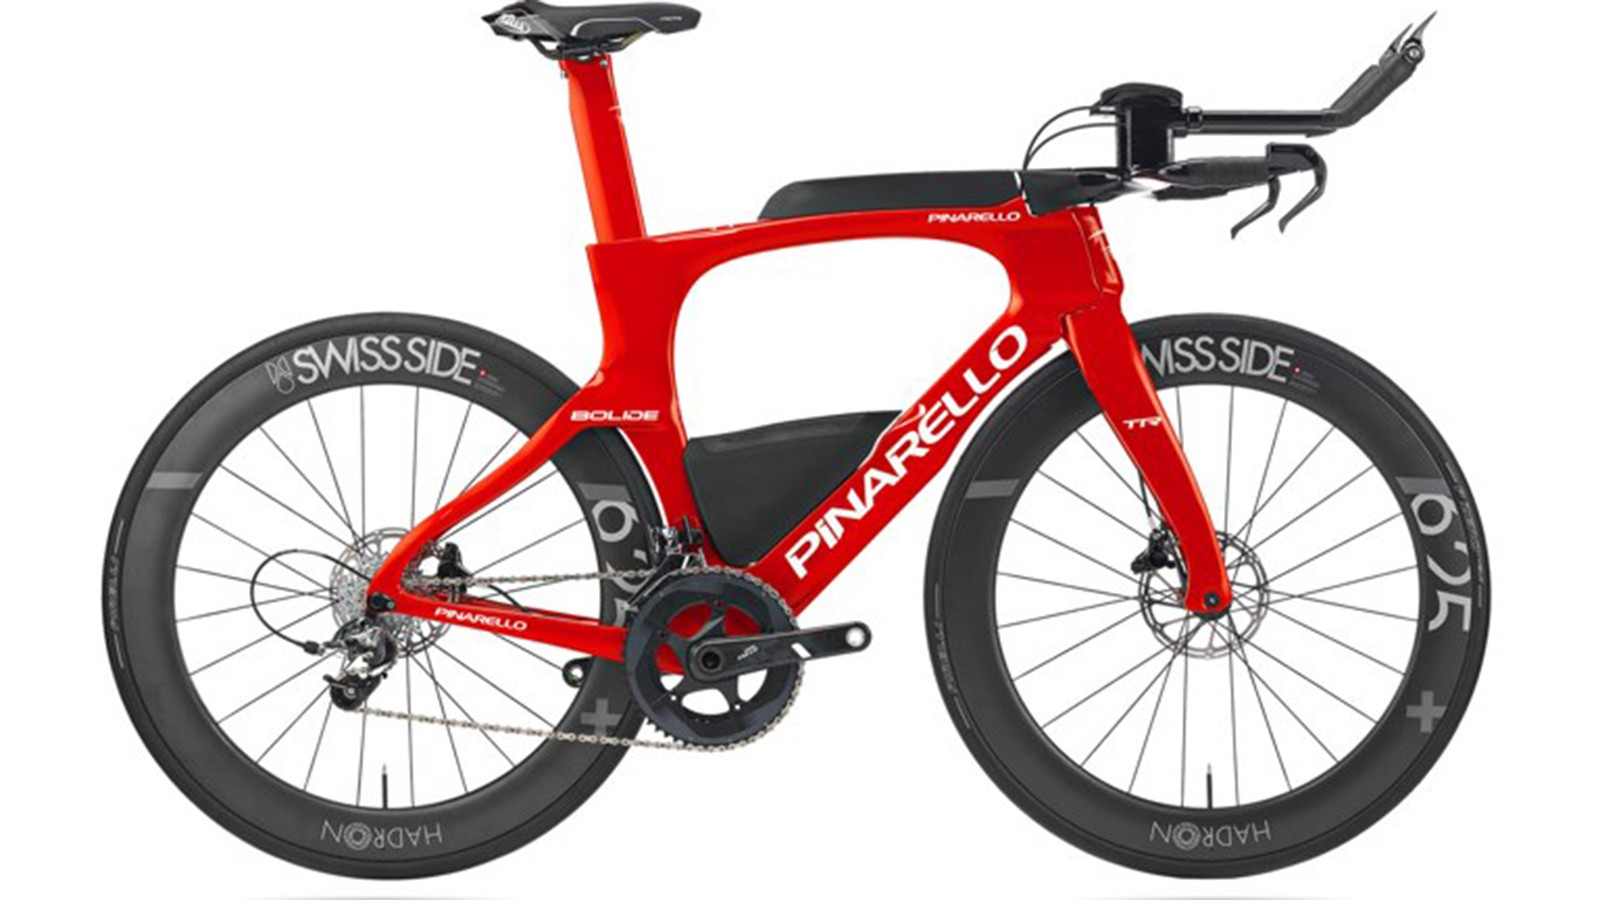 The bike is equipped with disc brakes